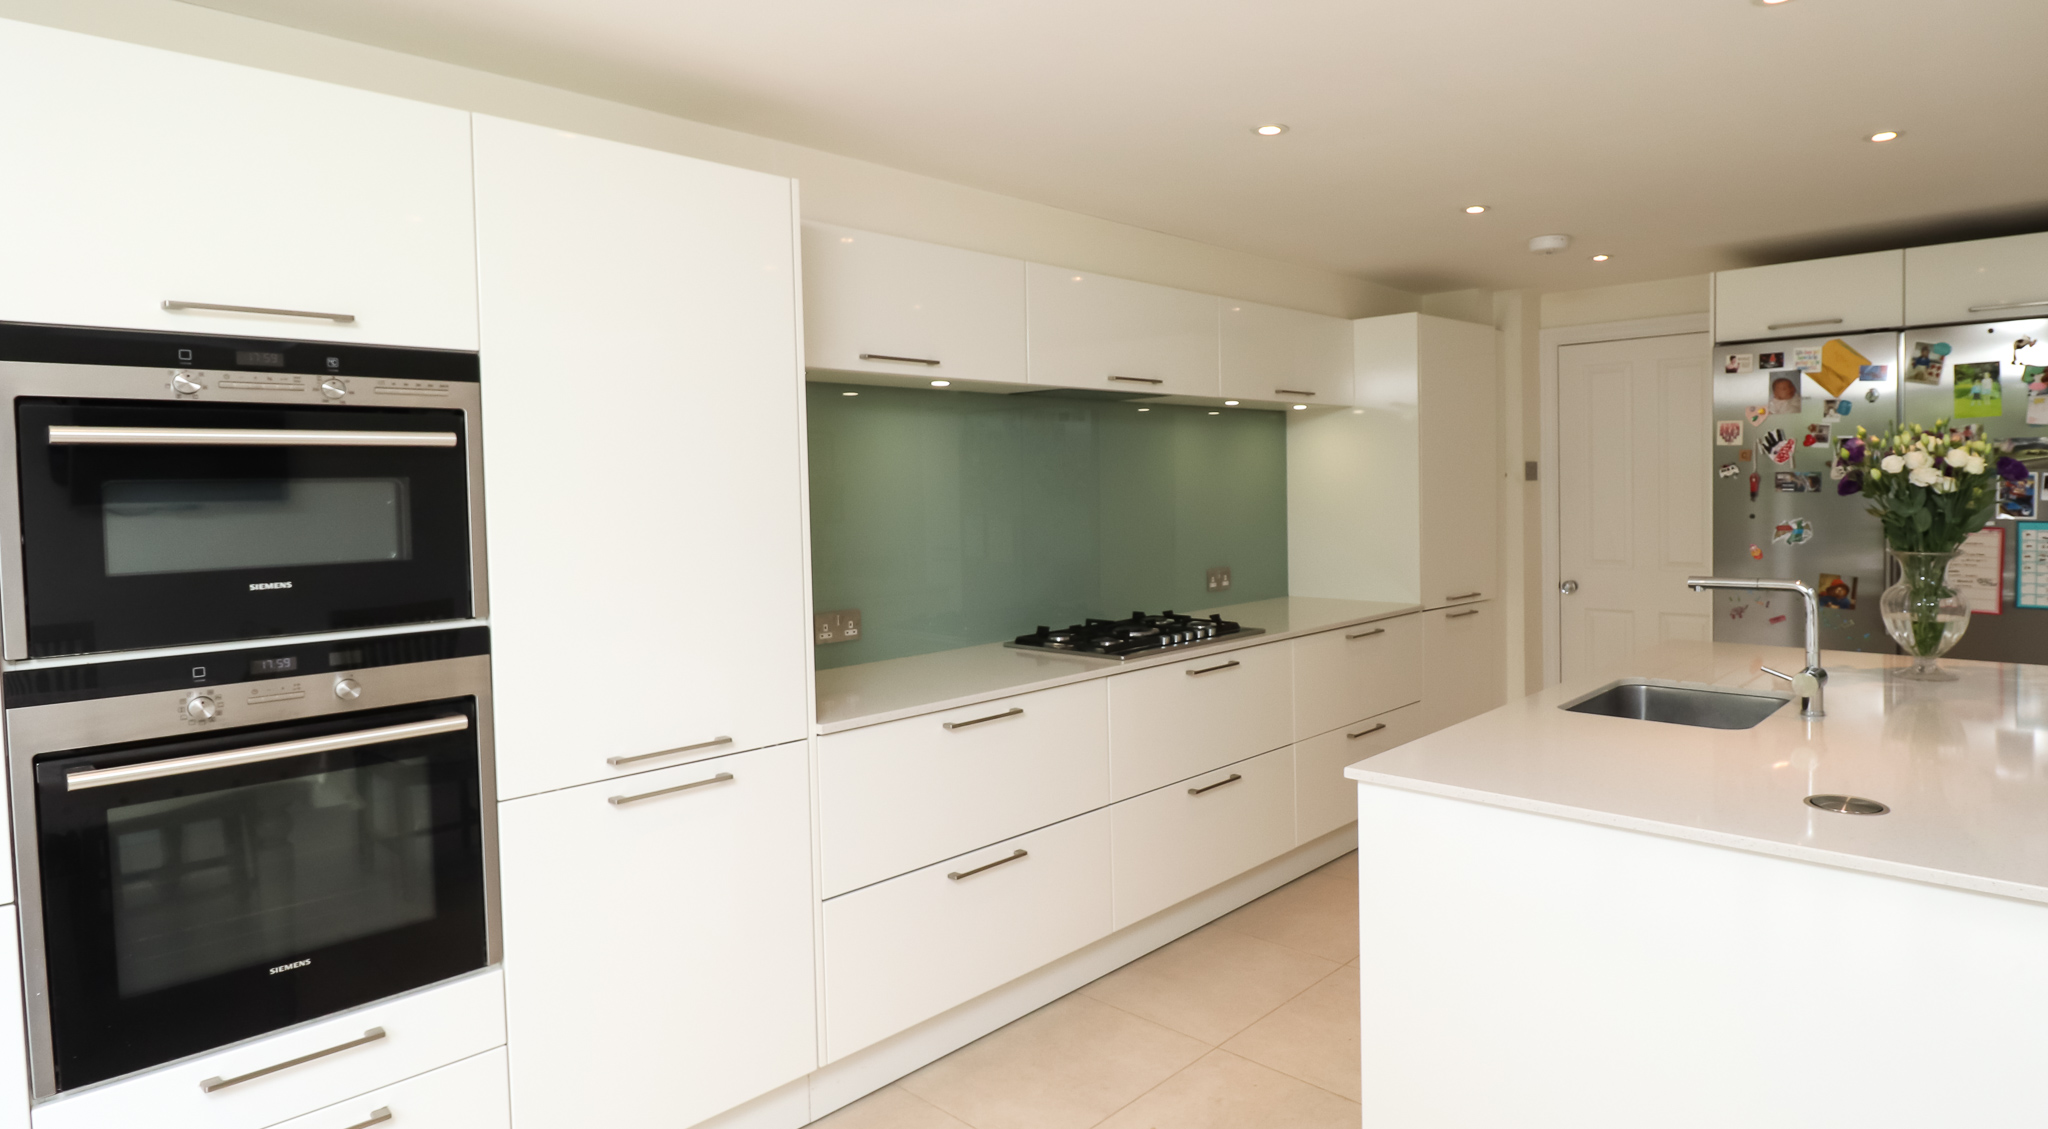 DOUBLE OVENS, WHITE KITCHEN.jpg